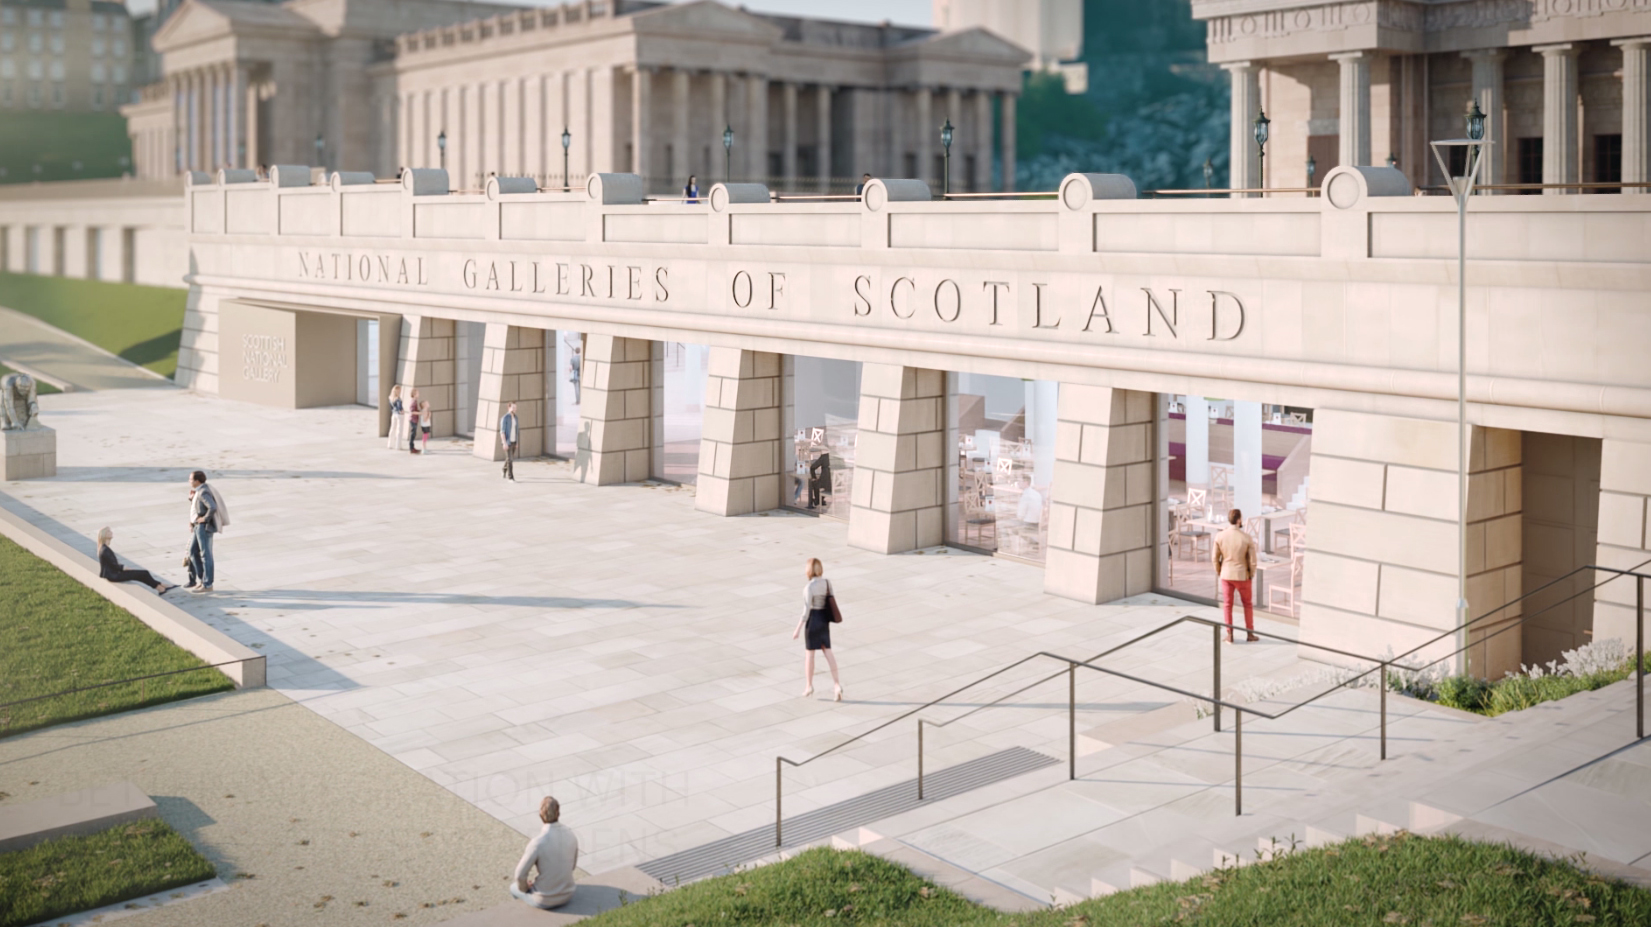 The Scottish National Gallery Project